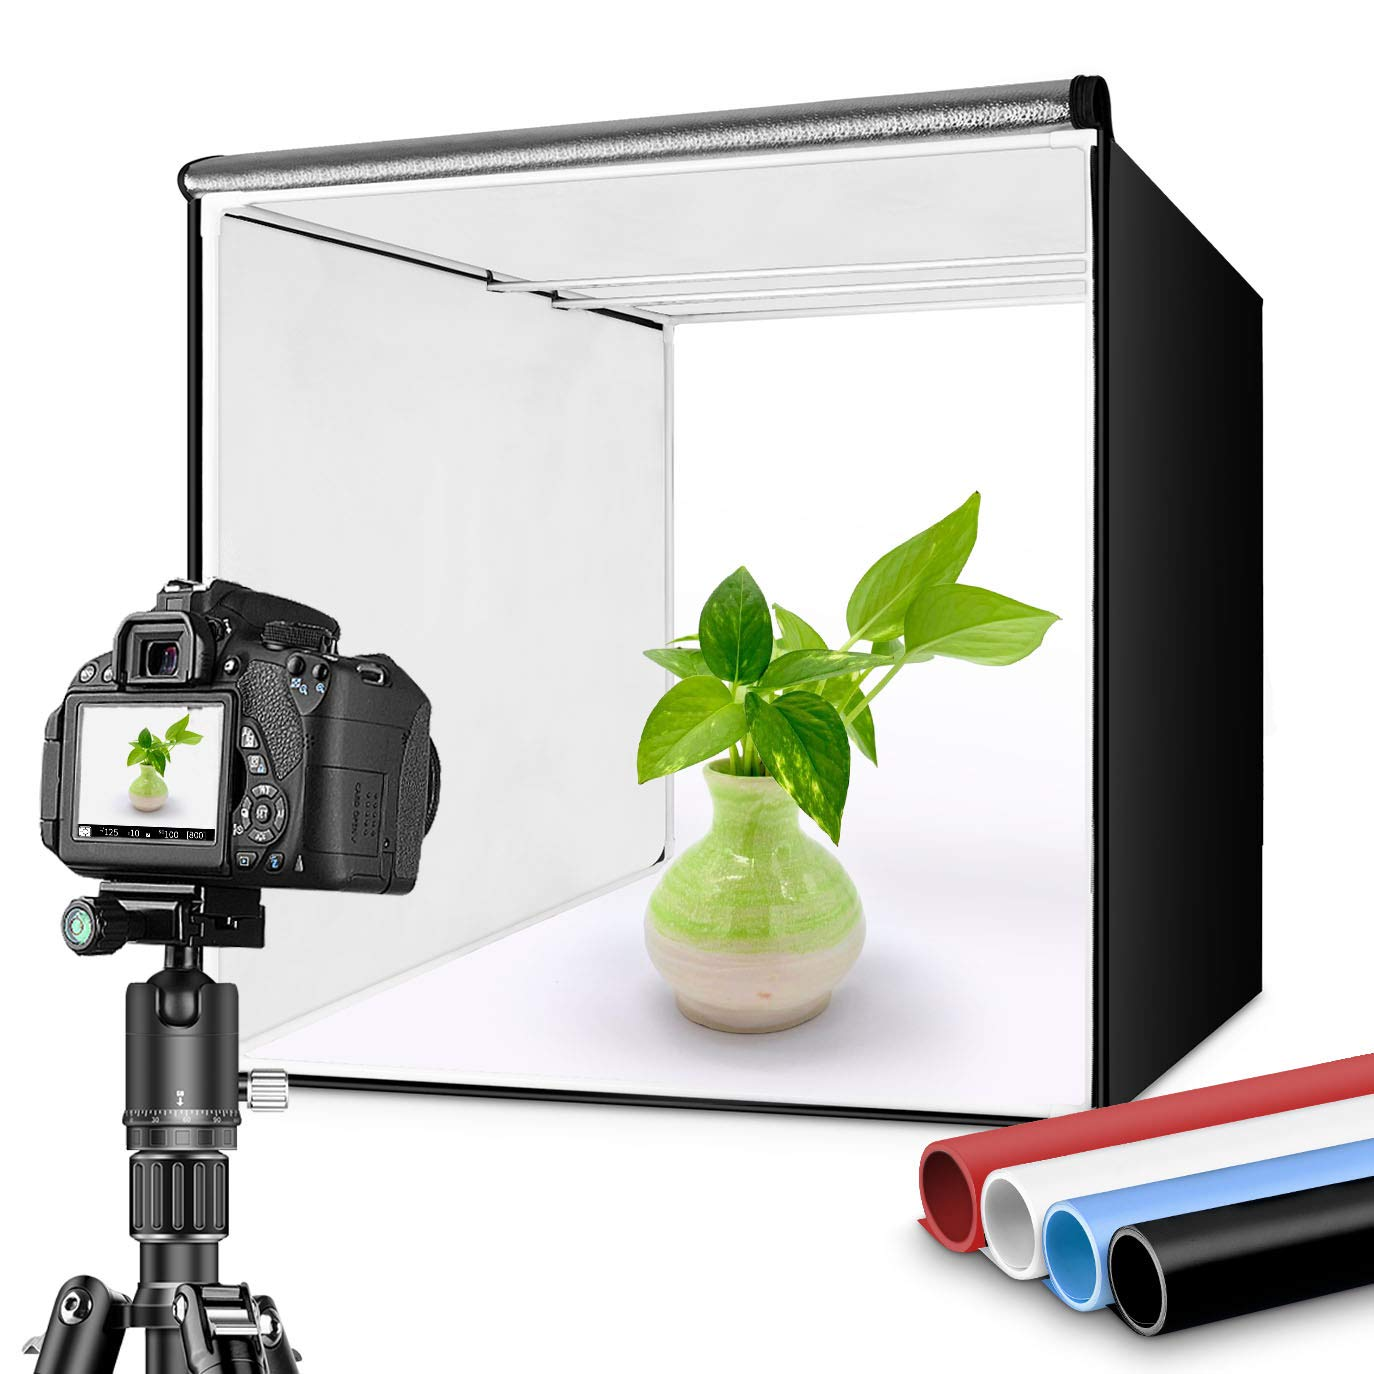 TRAVOR Photo Box 16''/40cm Photo Studio Light Box Portable Photography Shooting Tent with Movable LED Lights, Dimmable Table Top Light Tent with 4 Color Backdrops (White Black Red Blue), CRI95+ by Travor